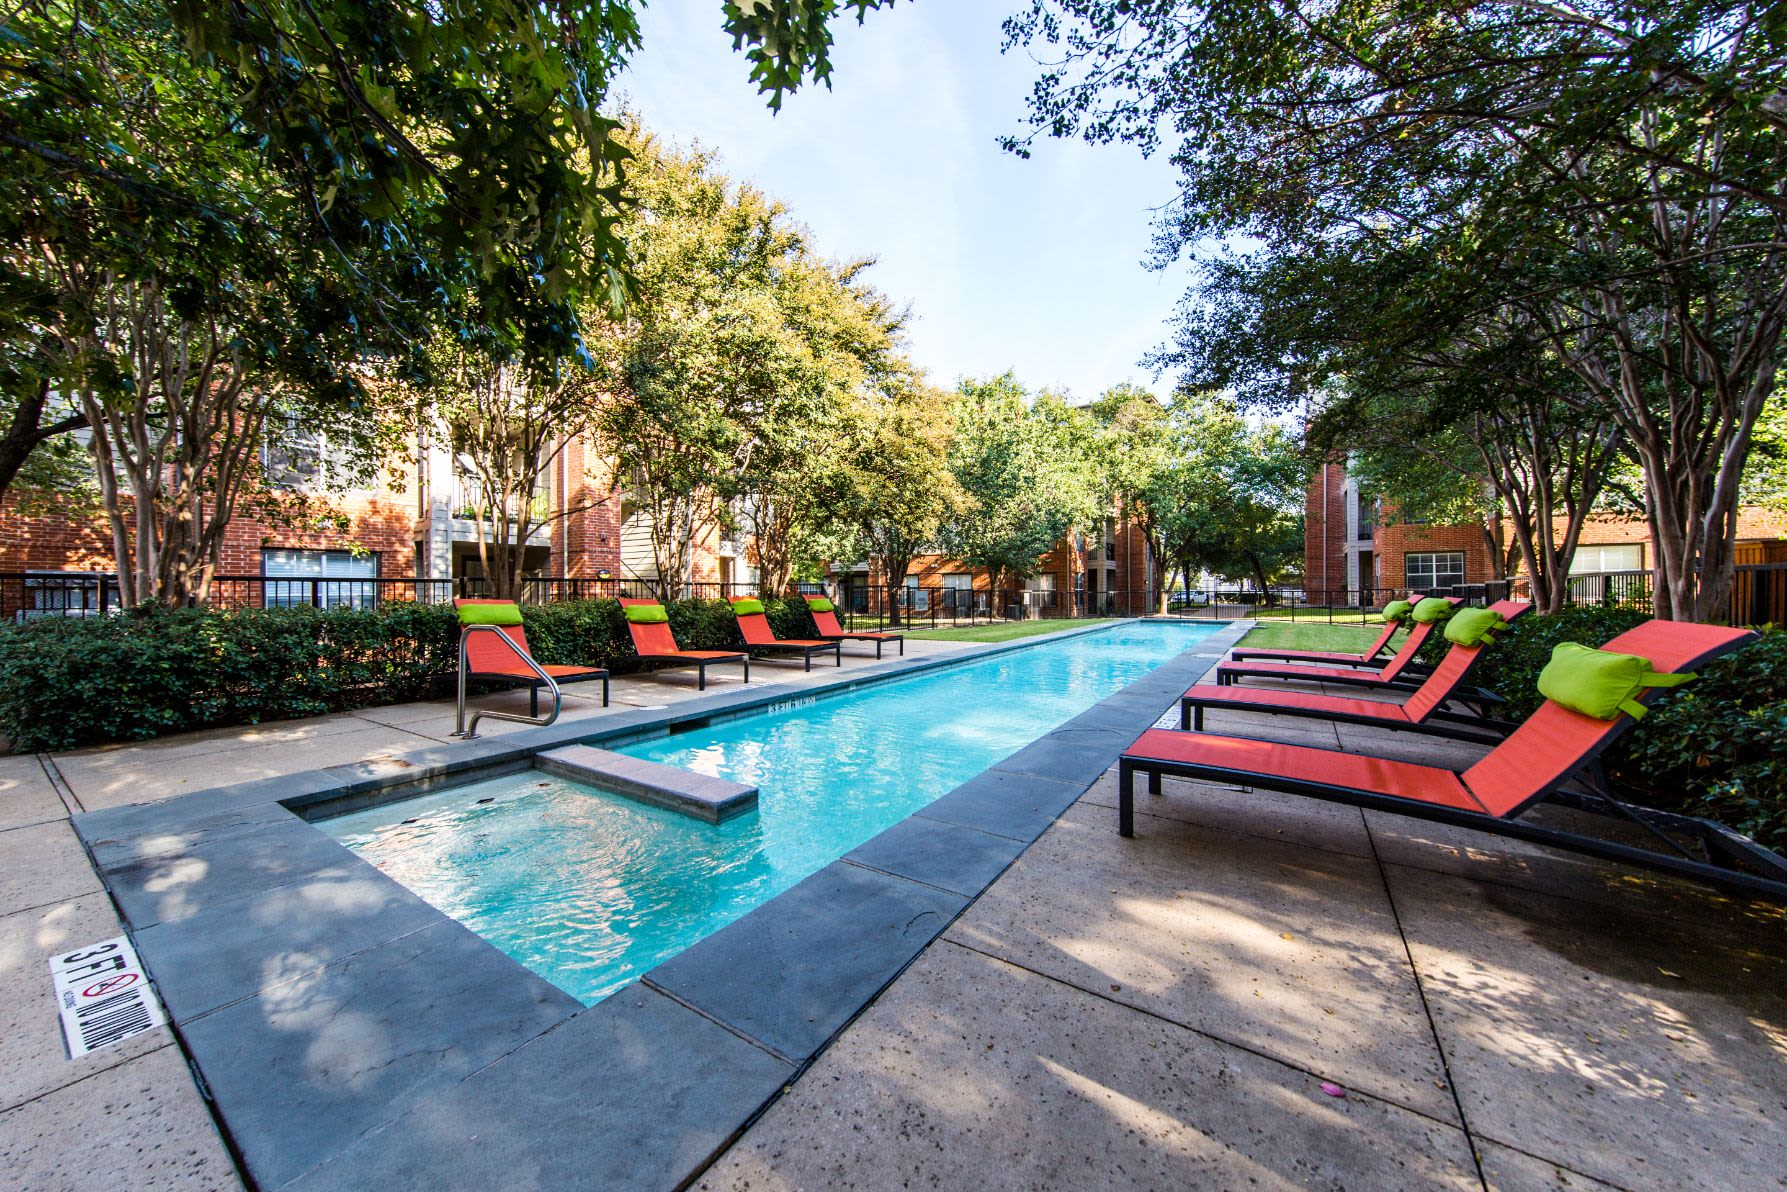 Long and slender swimming pool with lounge chairs on deck at Marquis on Gaston in Dallas, Texas